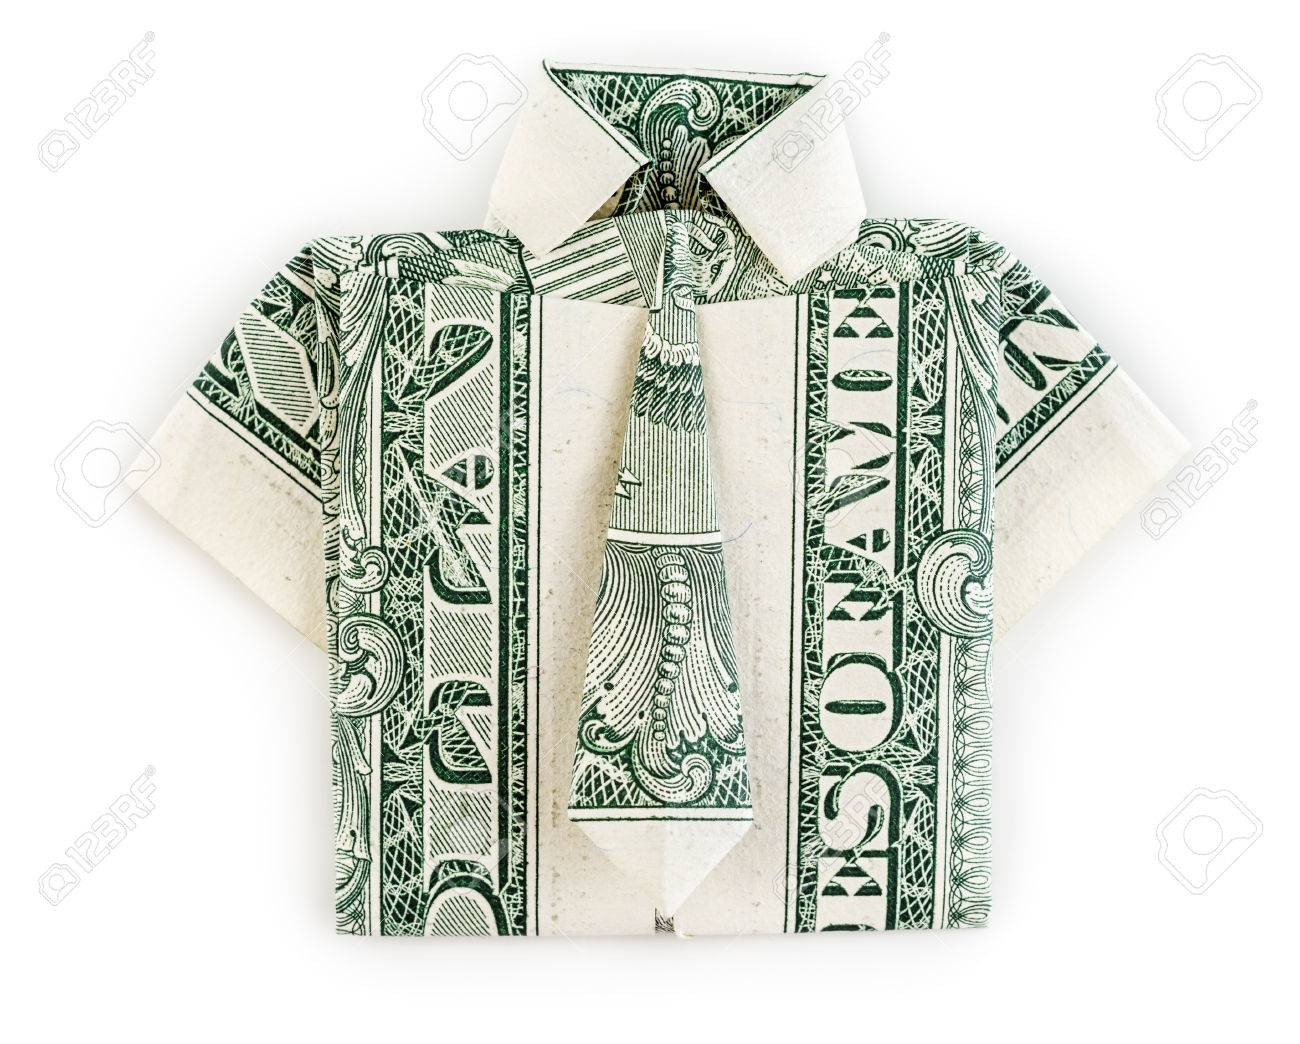 Dollar origami dress. Moneygami. Euro, Russian rubles. — Stock Photo ©  vershinin.photo #228139324 | 1044x1300